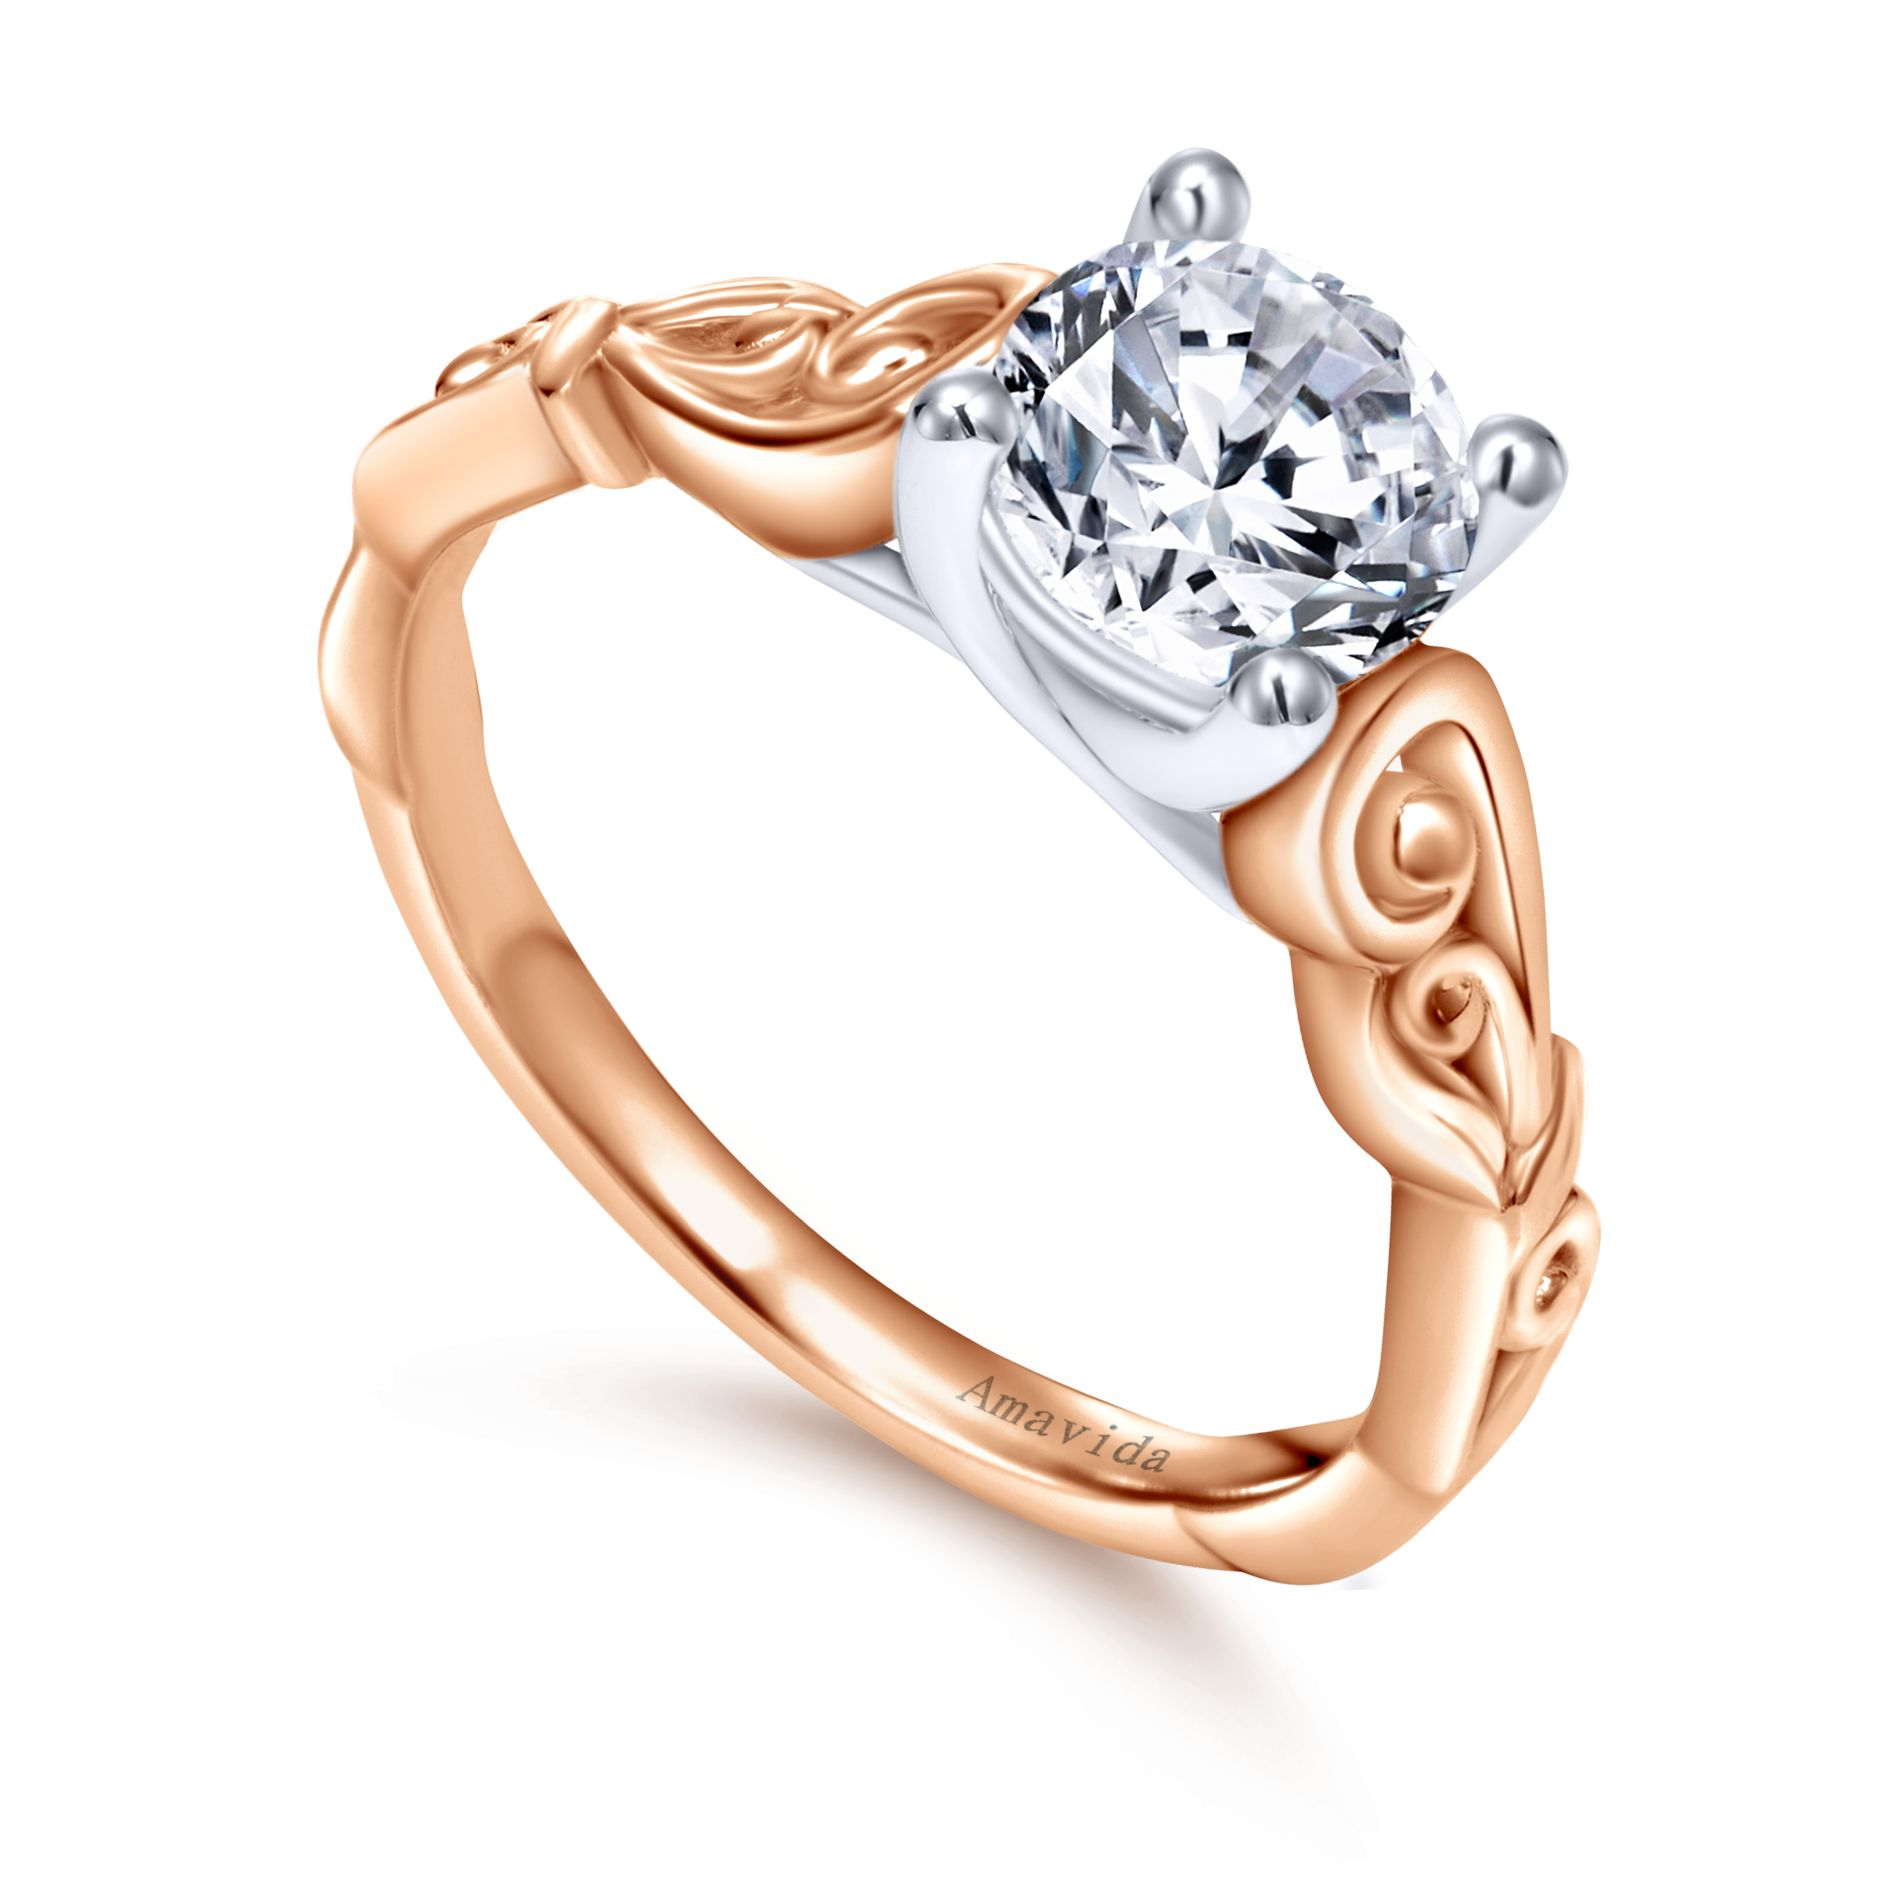 Engagement Rings - WHITE/ROSE GOLD ROUND FREE FORM ENGAGEMENT RING - image #3